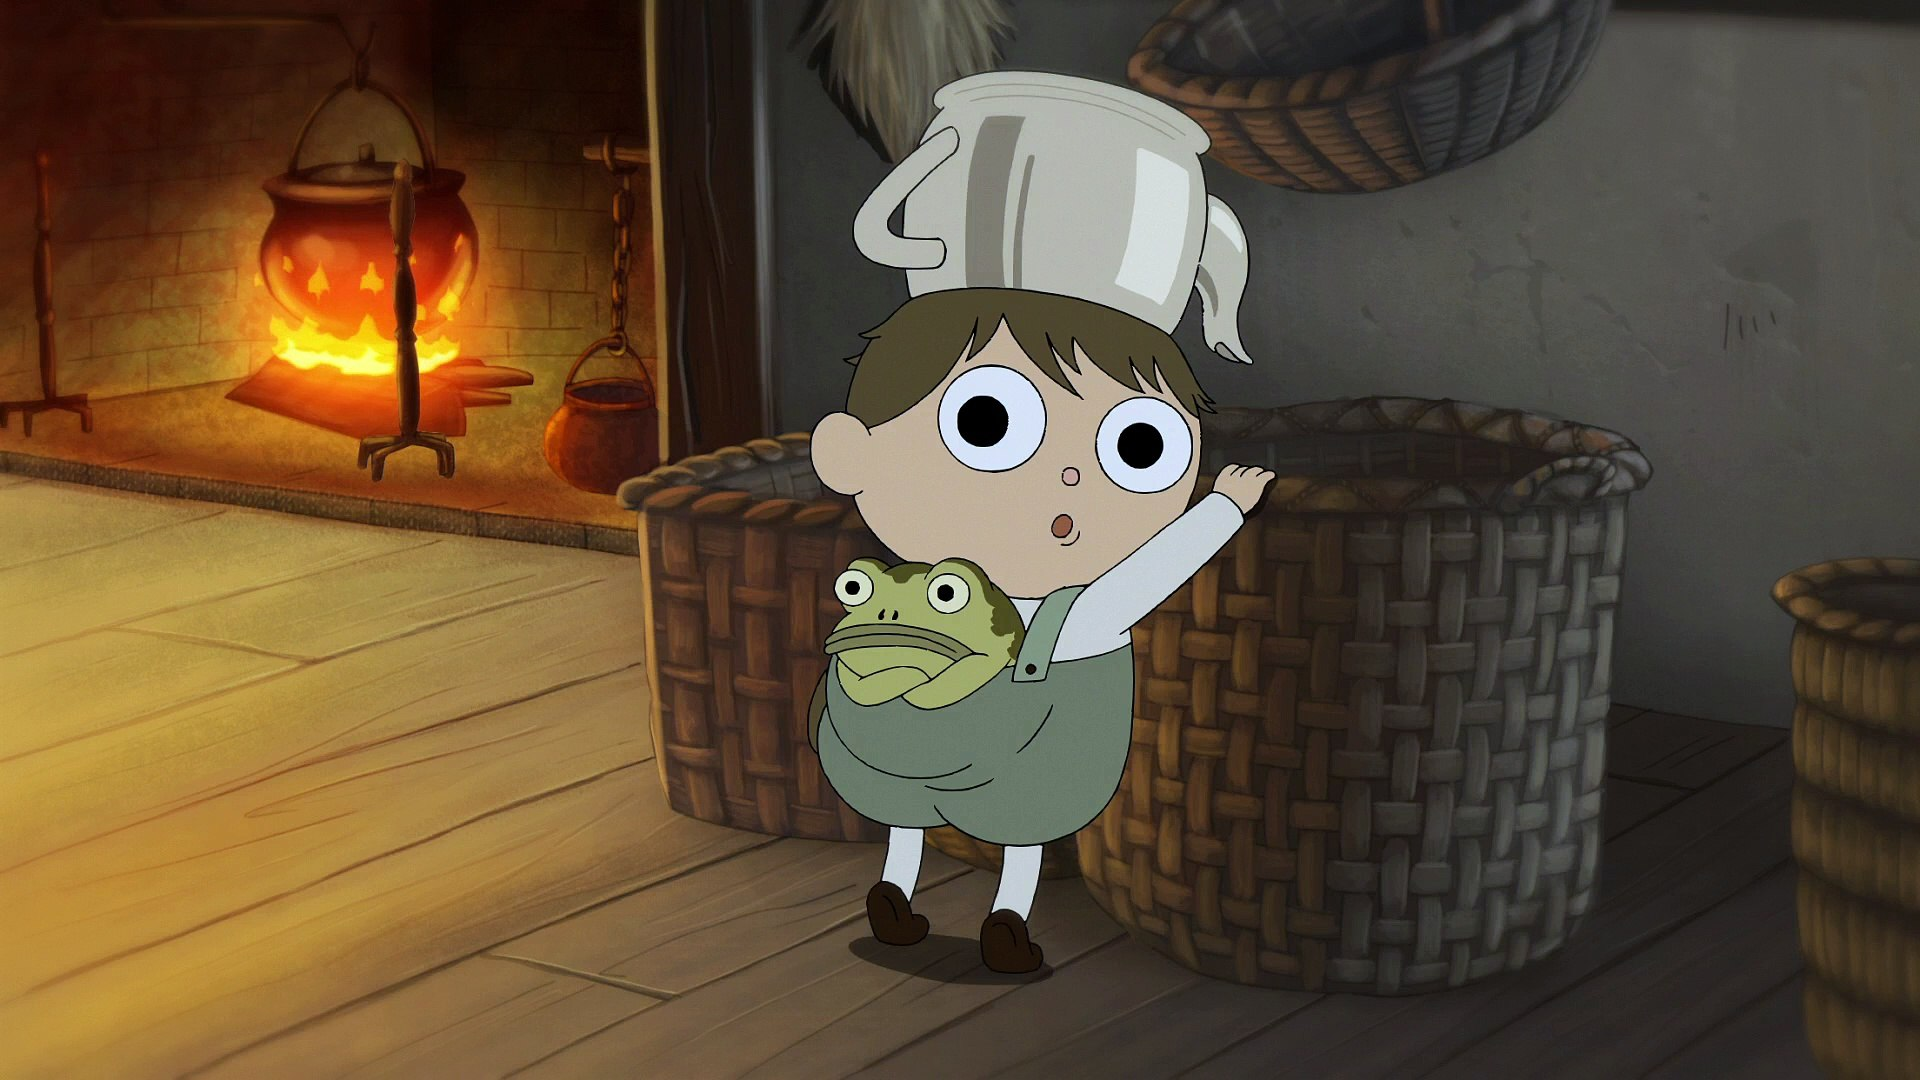 Over The Garden Wall Episode 7 Chapter 7 The Ringing Of The Bell Hd